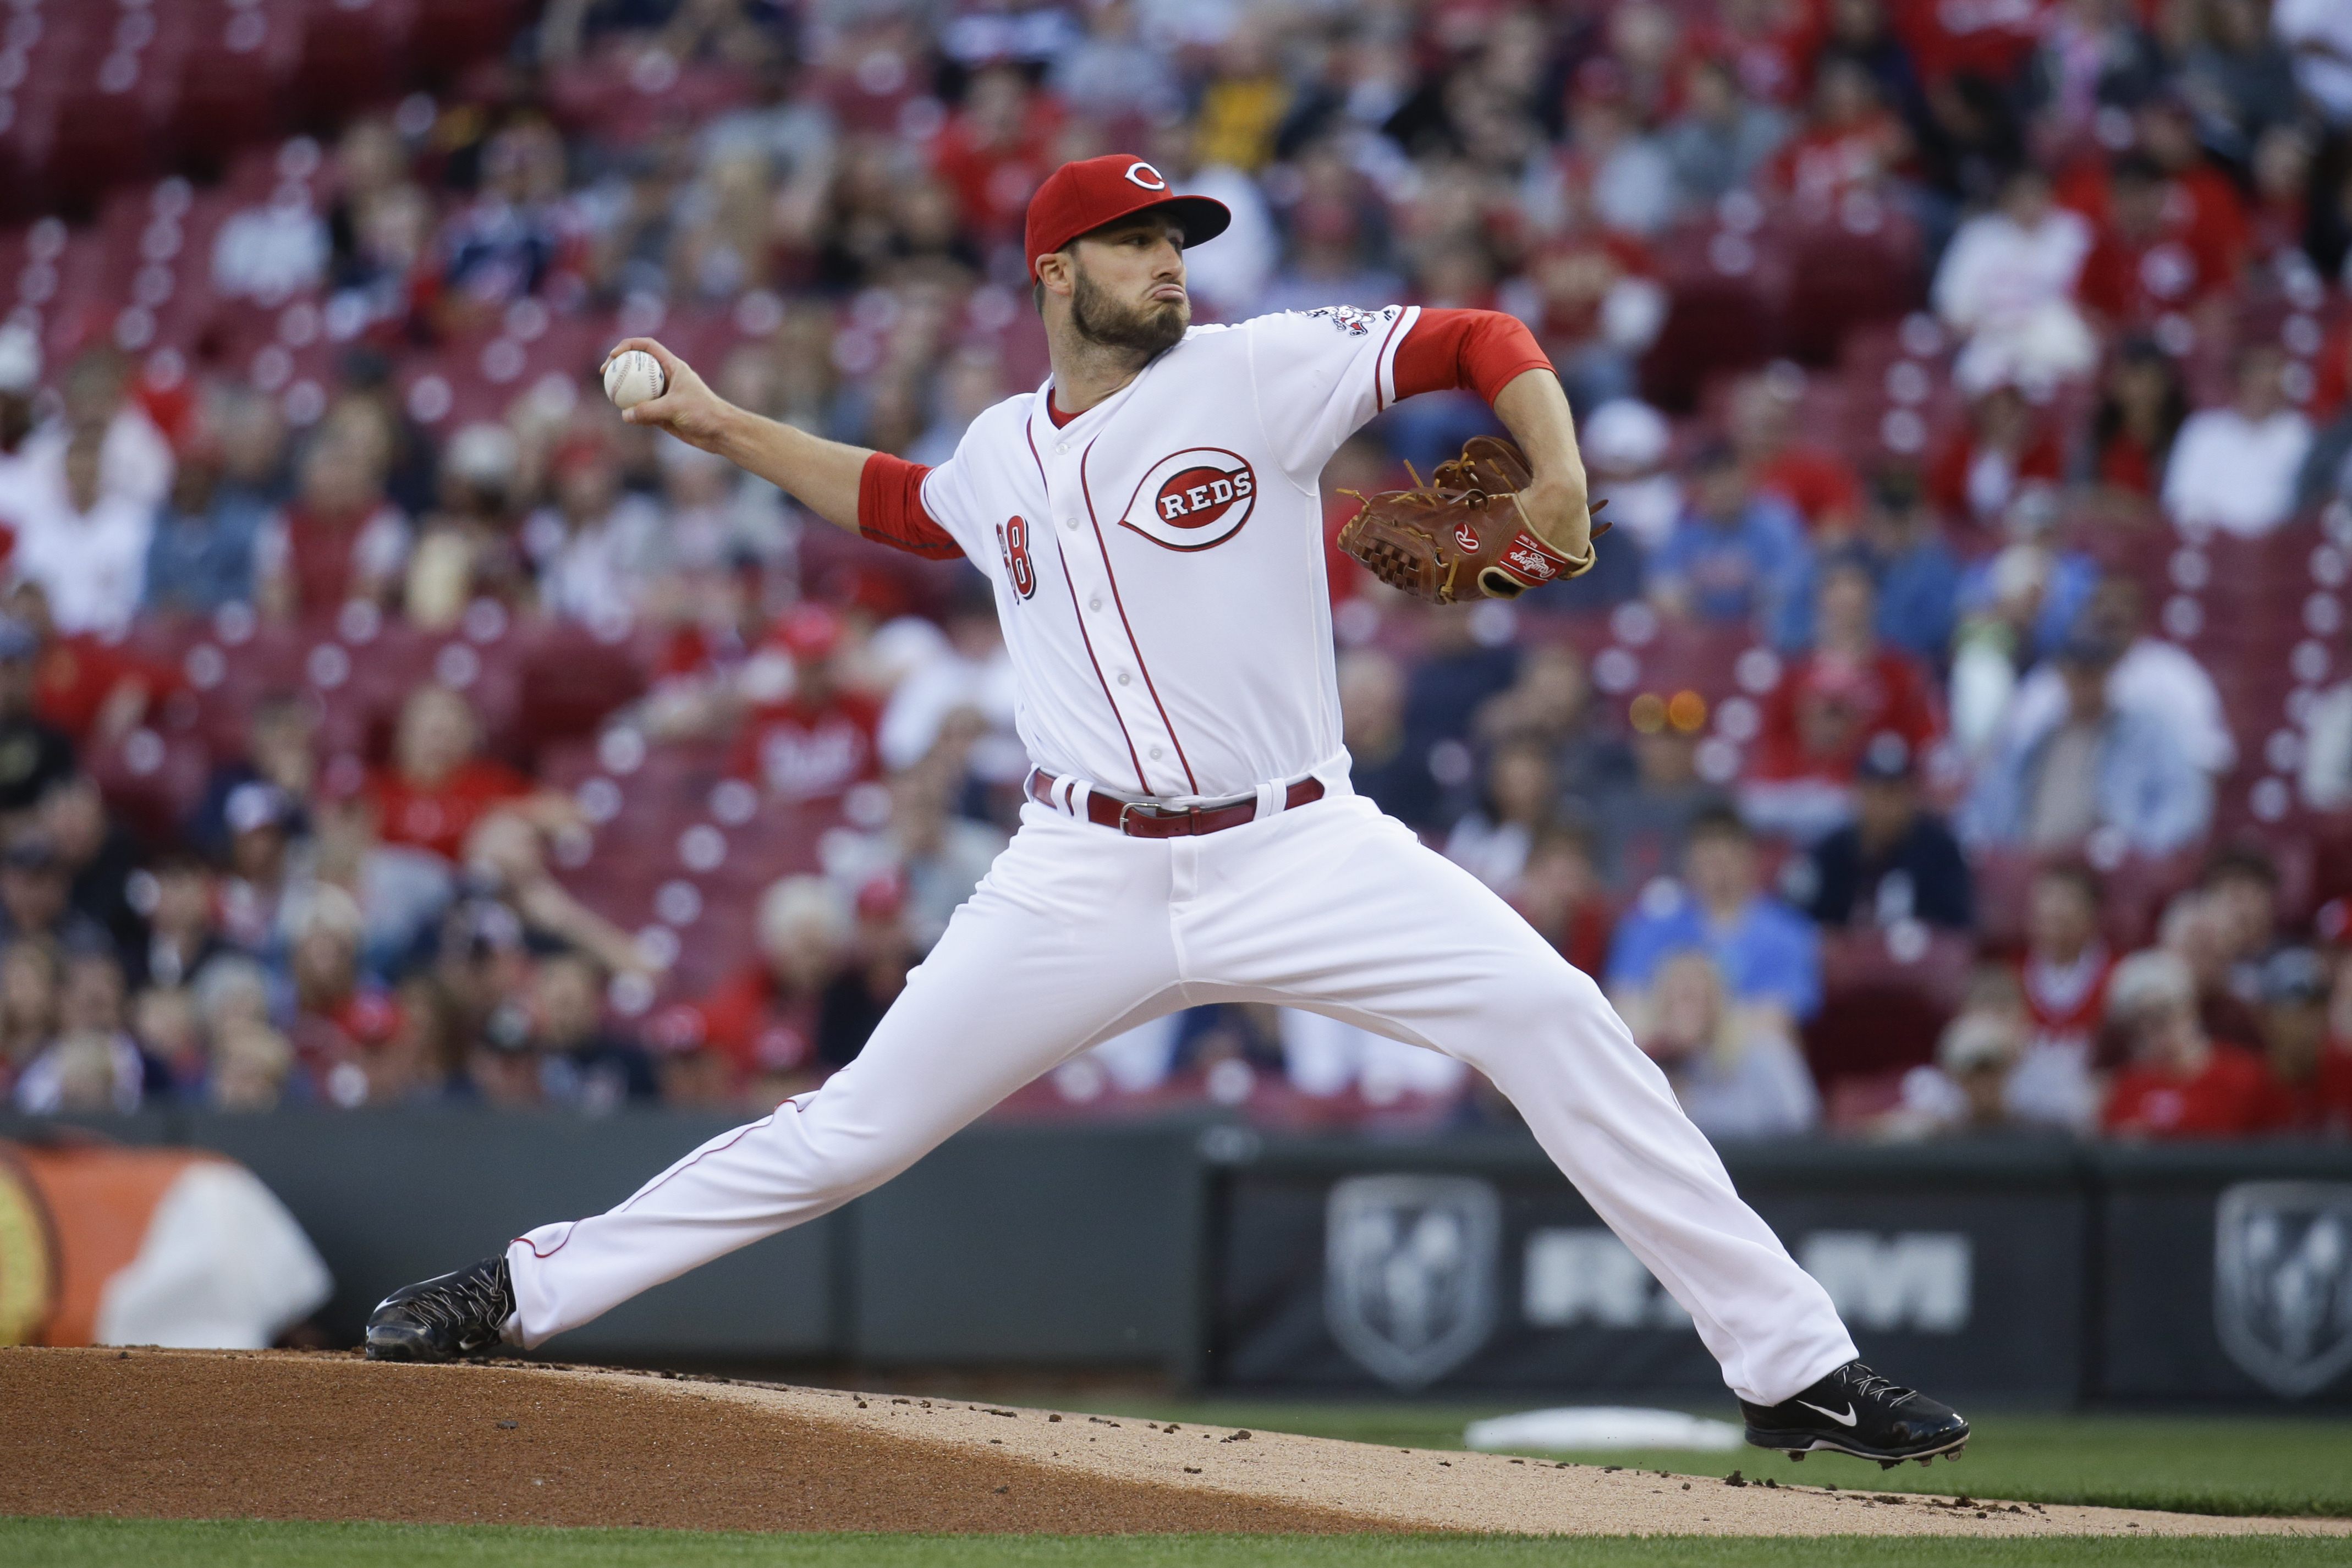 Cincinnati Reds starting pitcher Tim Adleman throws during the first inning of a baseball game against the Cleveland Indians, Thursday, May 19, 2016, in Cincinnati. (AP Photo/John Minchillo)